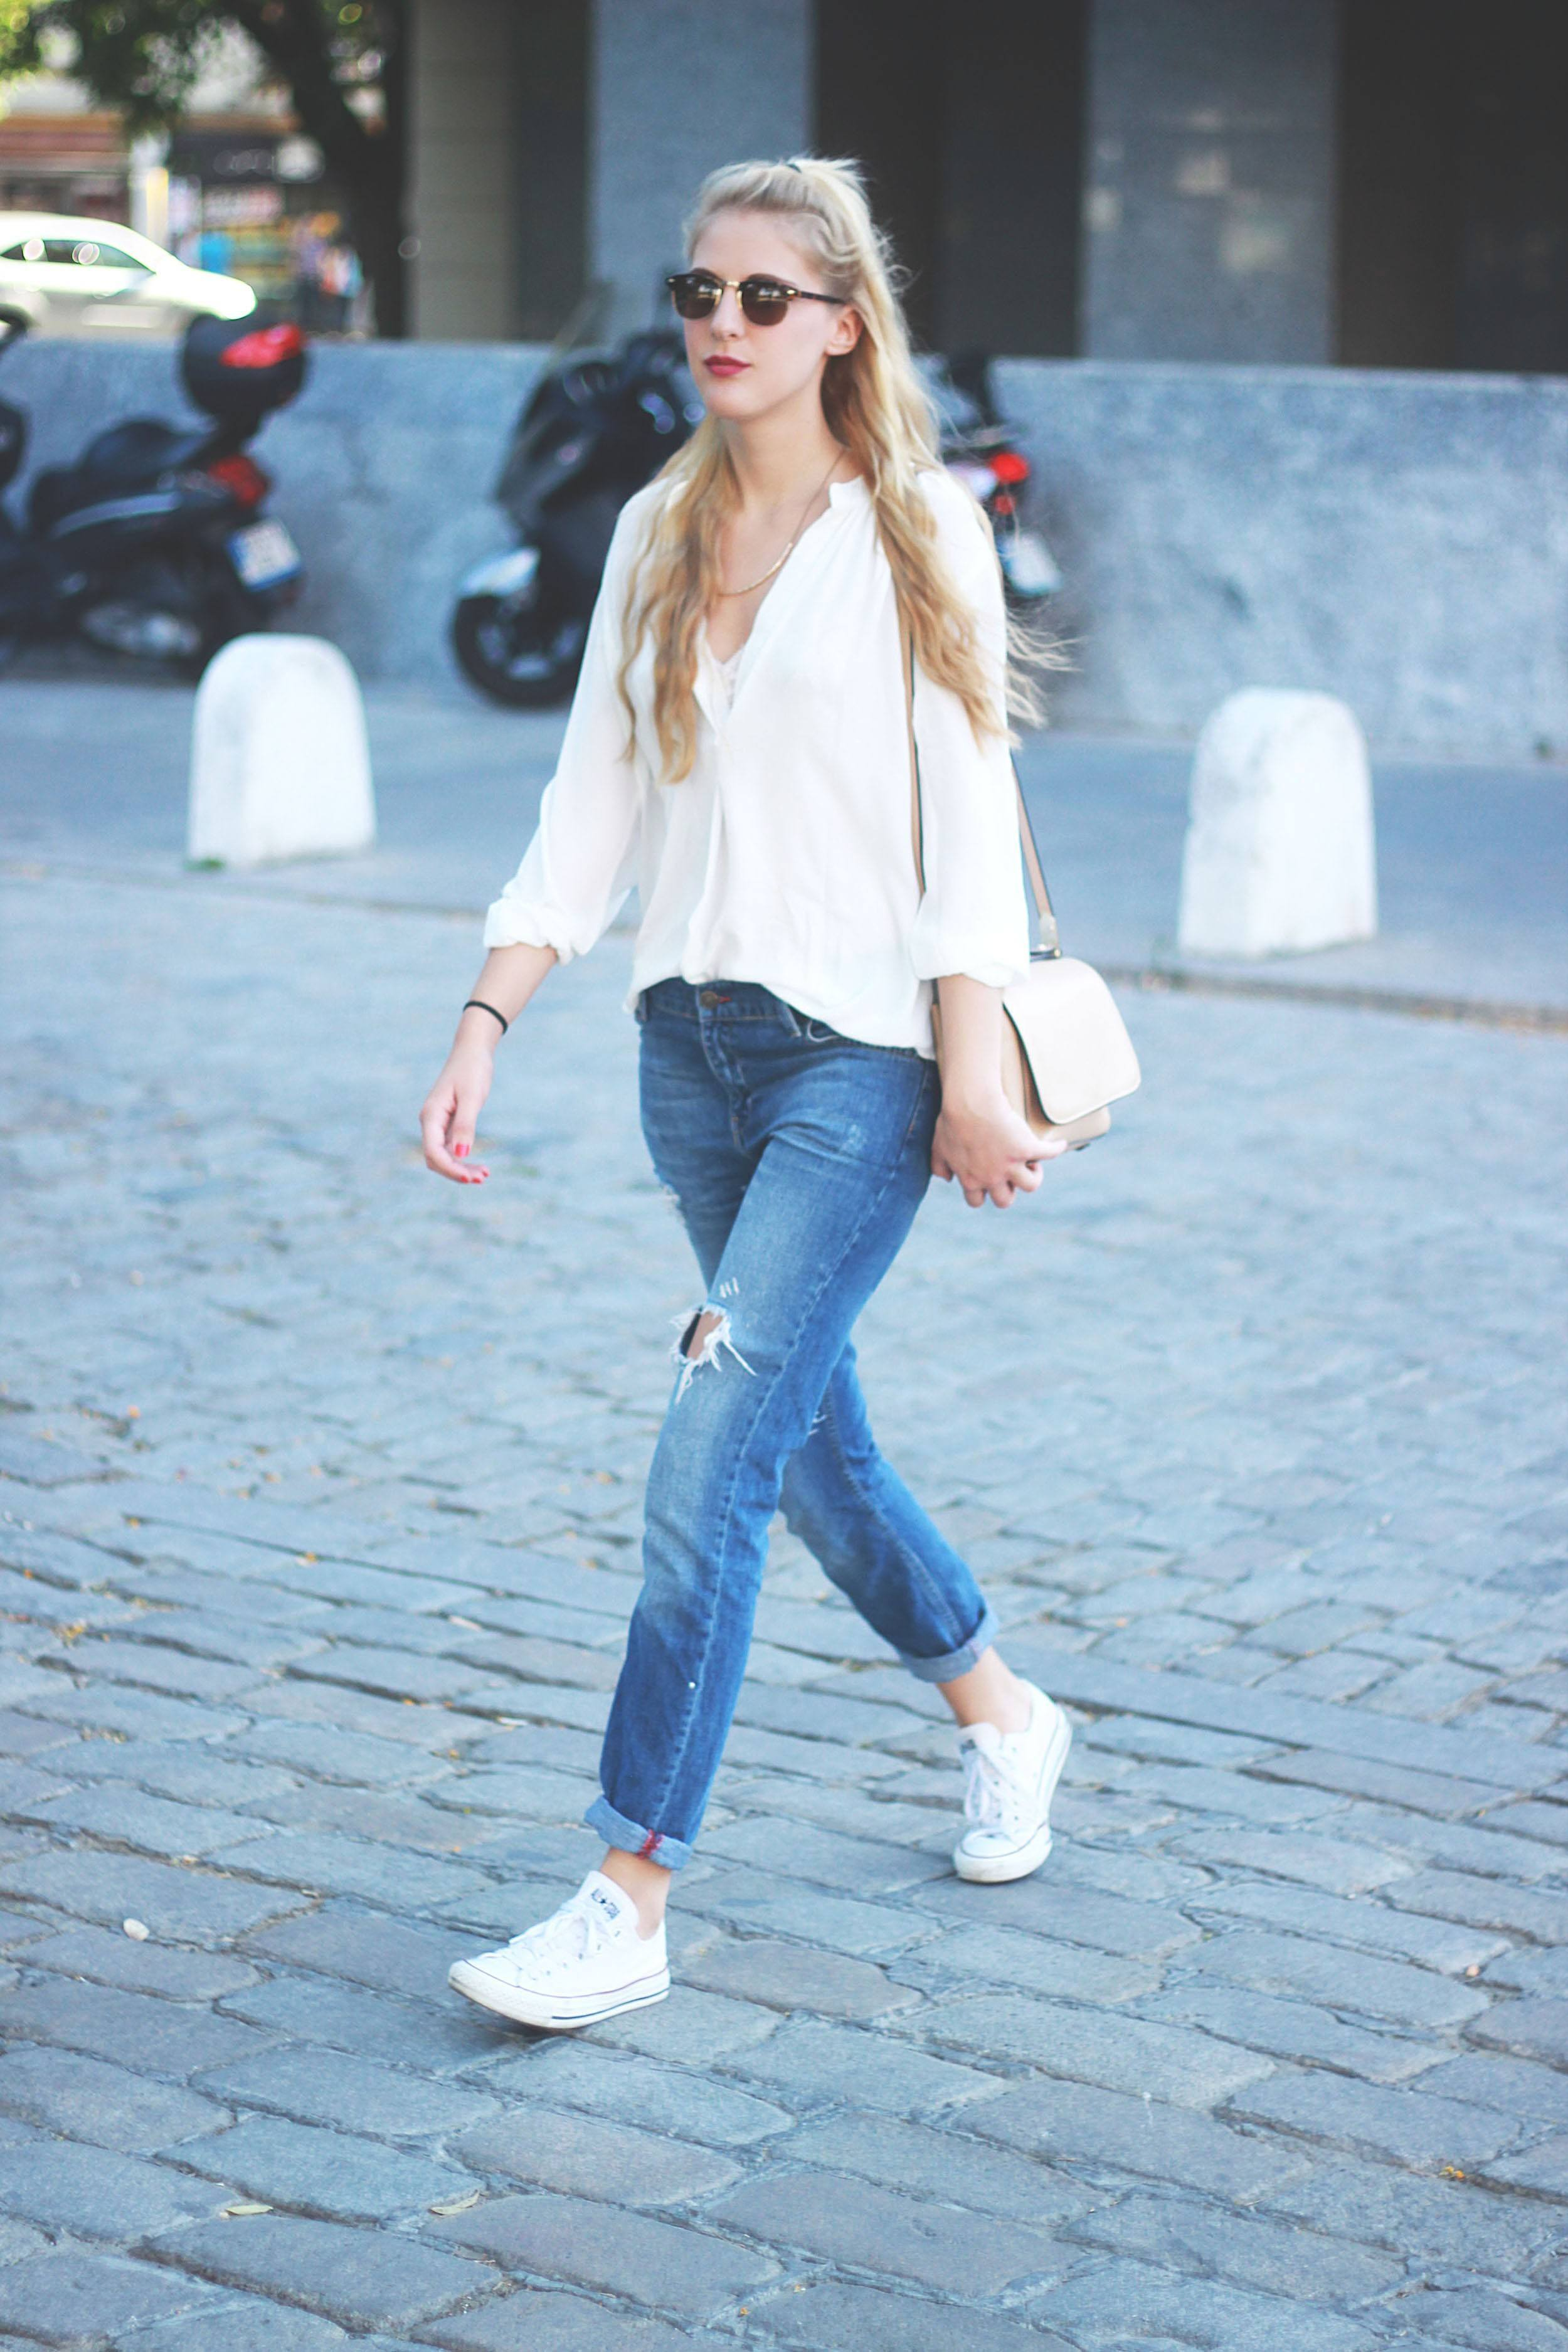 sporty-look-in-spring 21 Trending Spring Street Style Outfits for Women This Year